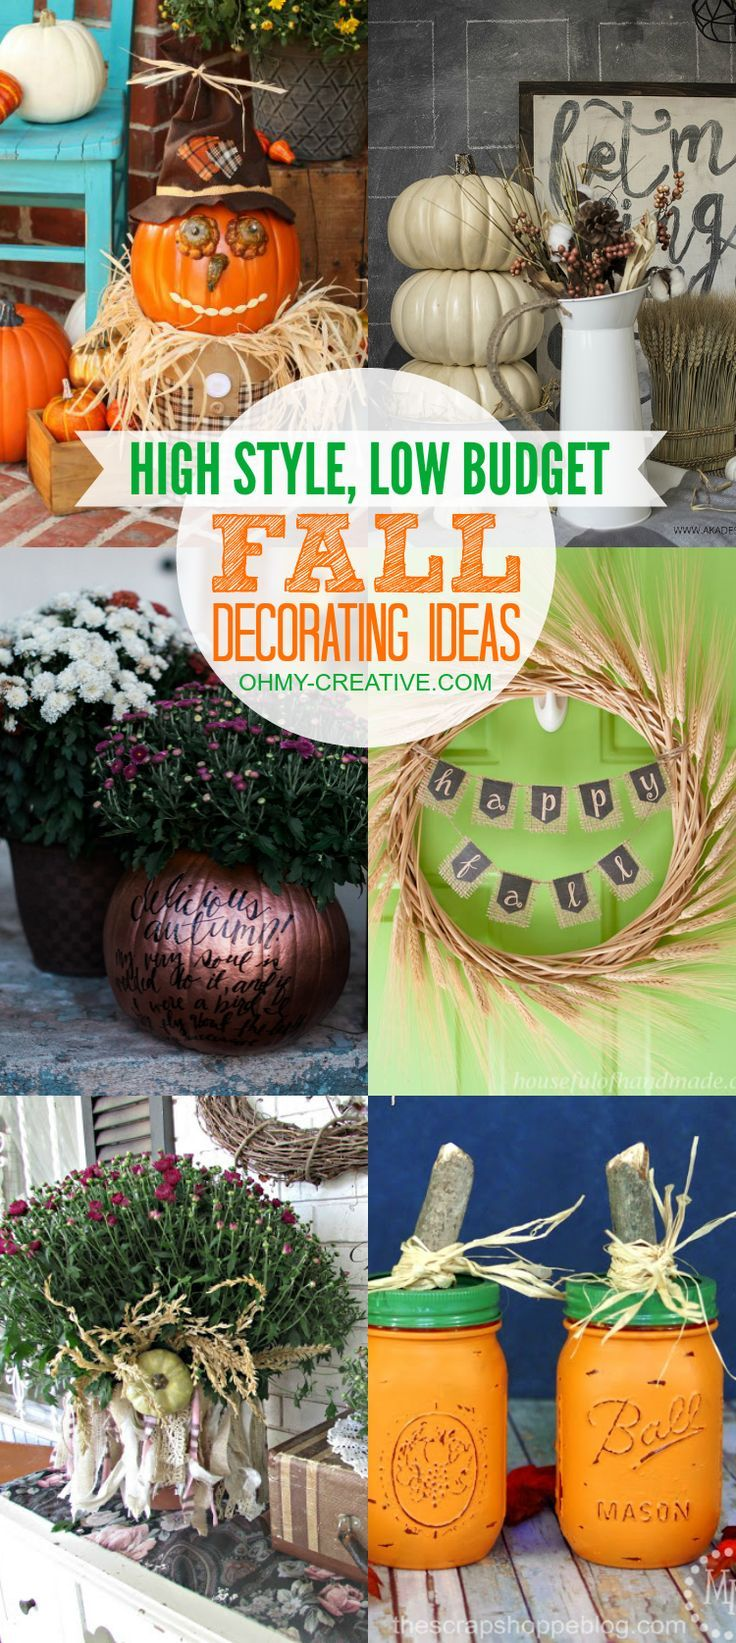 easy diy fall decor ideas page 4 of 17 budget home decoratingdecorating - Decorating For Halloween On A Budget